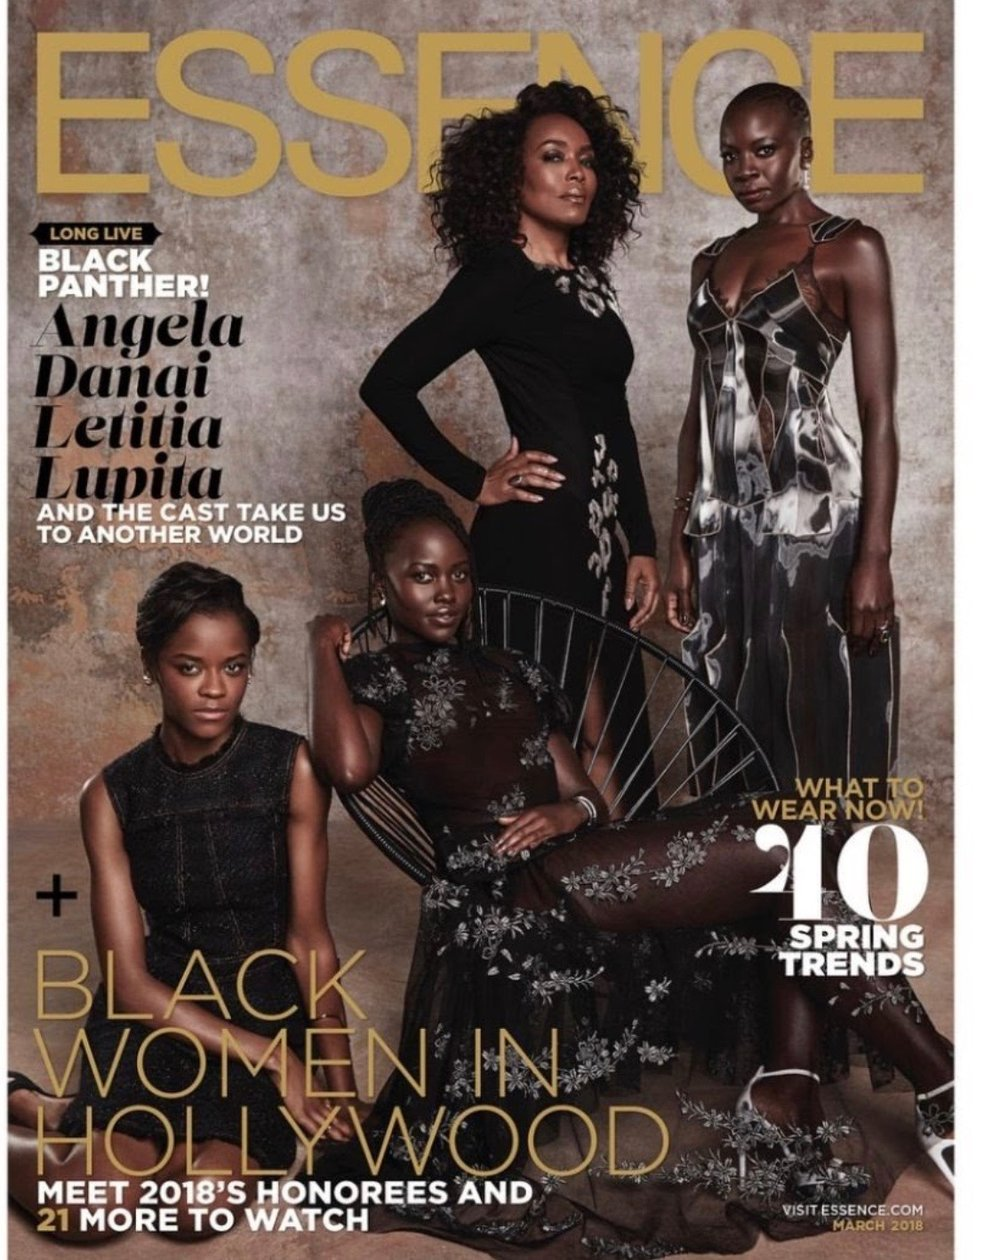 The BEAUTIFUL BLACK women in the Black Panther movie are fierce!  Black women are represented as strong and expected to be strong and relied on.  This is normal! Not unusual, threatnening or challenging to the strong black LEADERS, men.